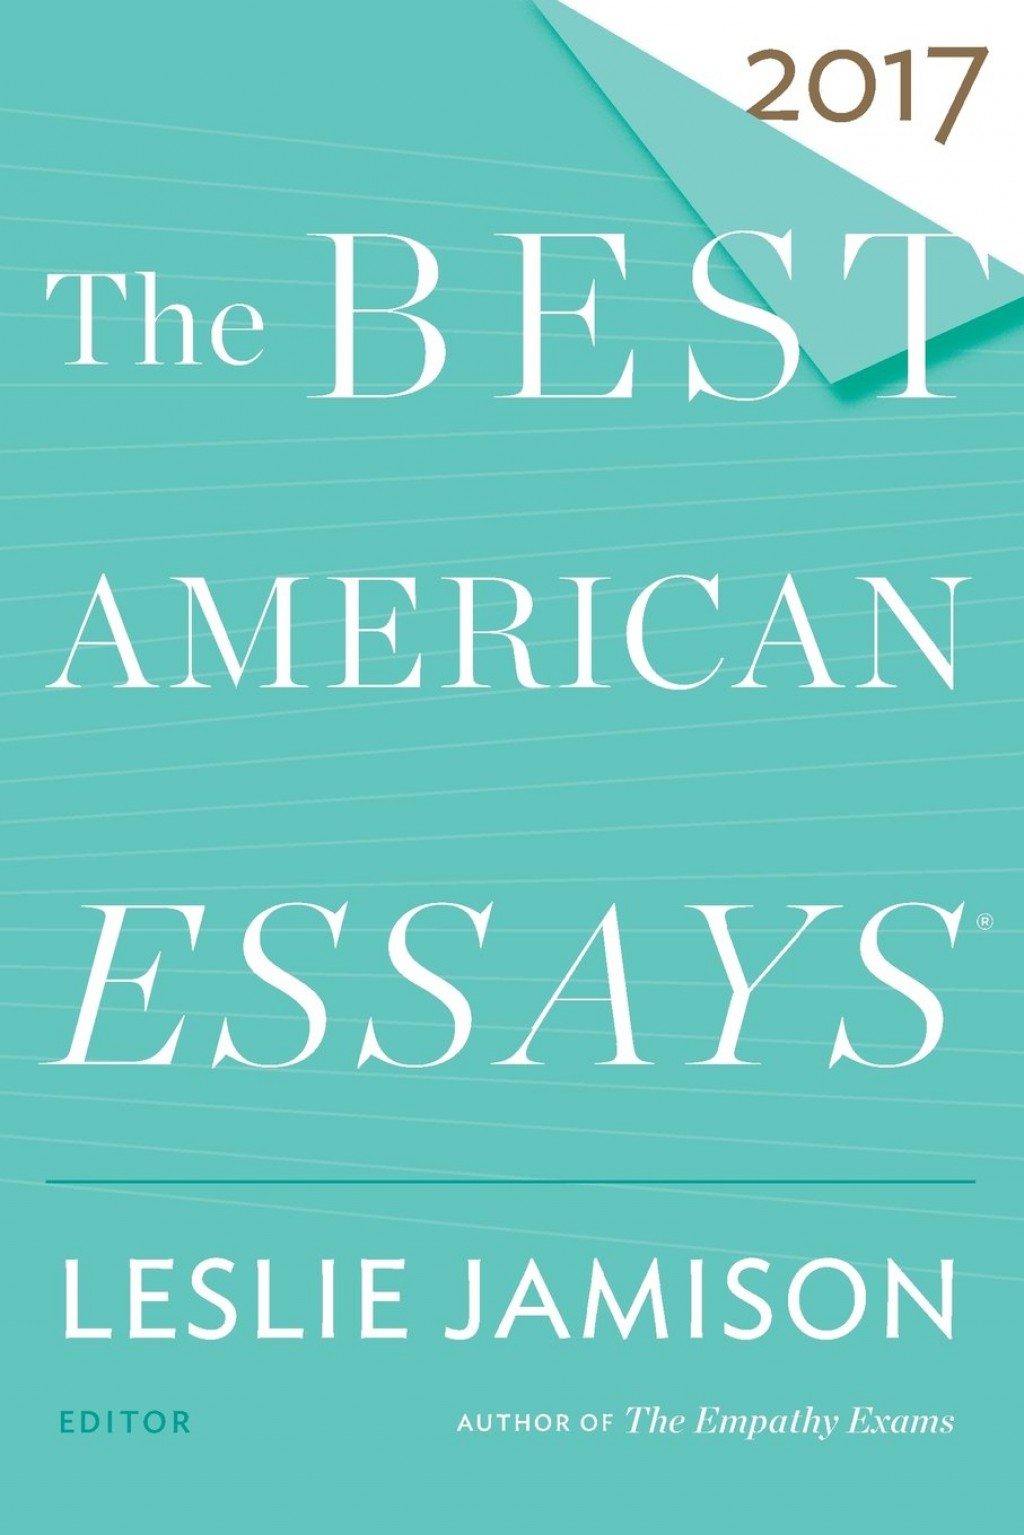 001 61tzl Nruvl Essay Example The Best American Wonderful Essays 2018 Pdf 2017 Table Of Contents 2015 Free Large